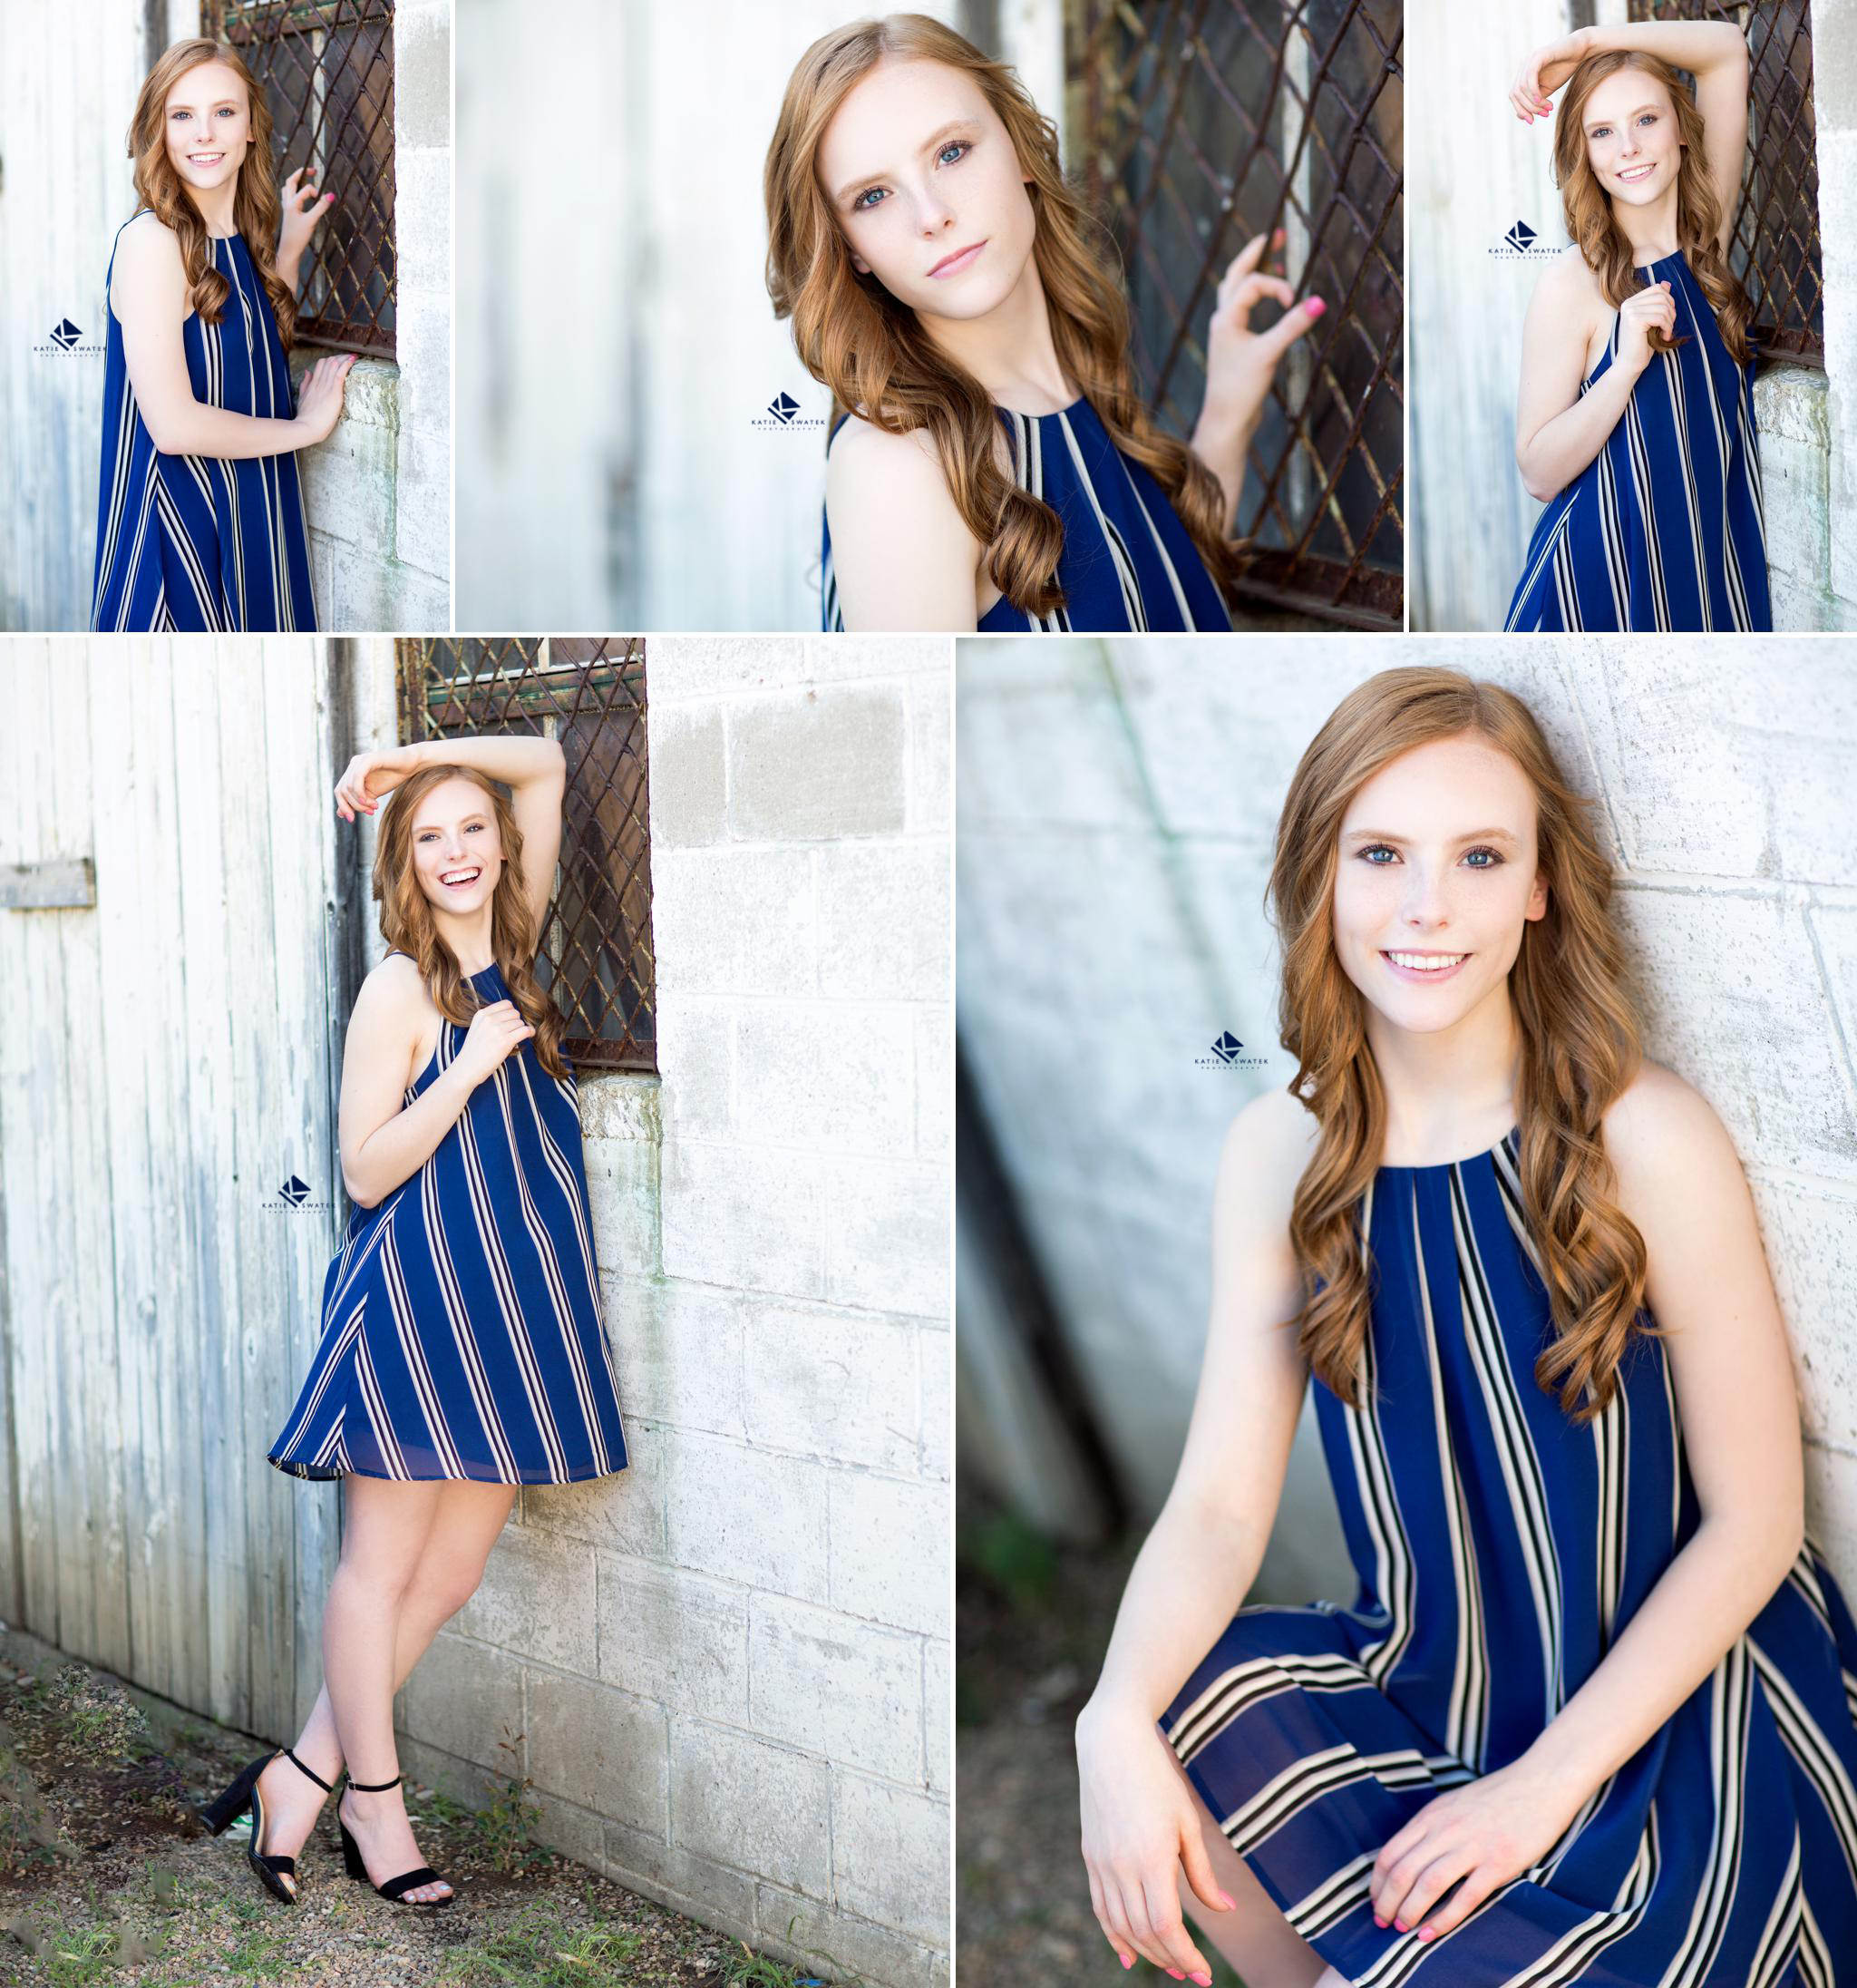 Red headed senior in a cobalt blue and white striped dress leaning against a white washed barn wall and a white cement wall